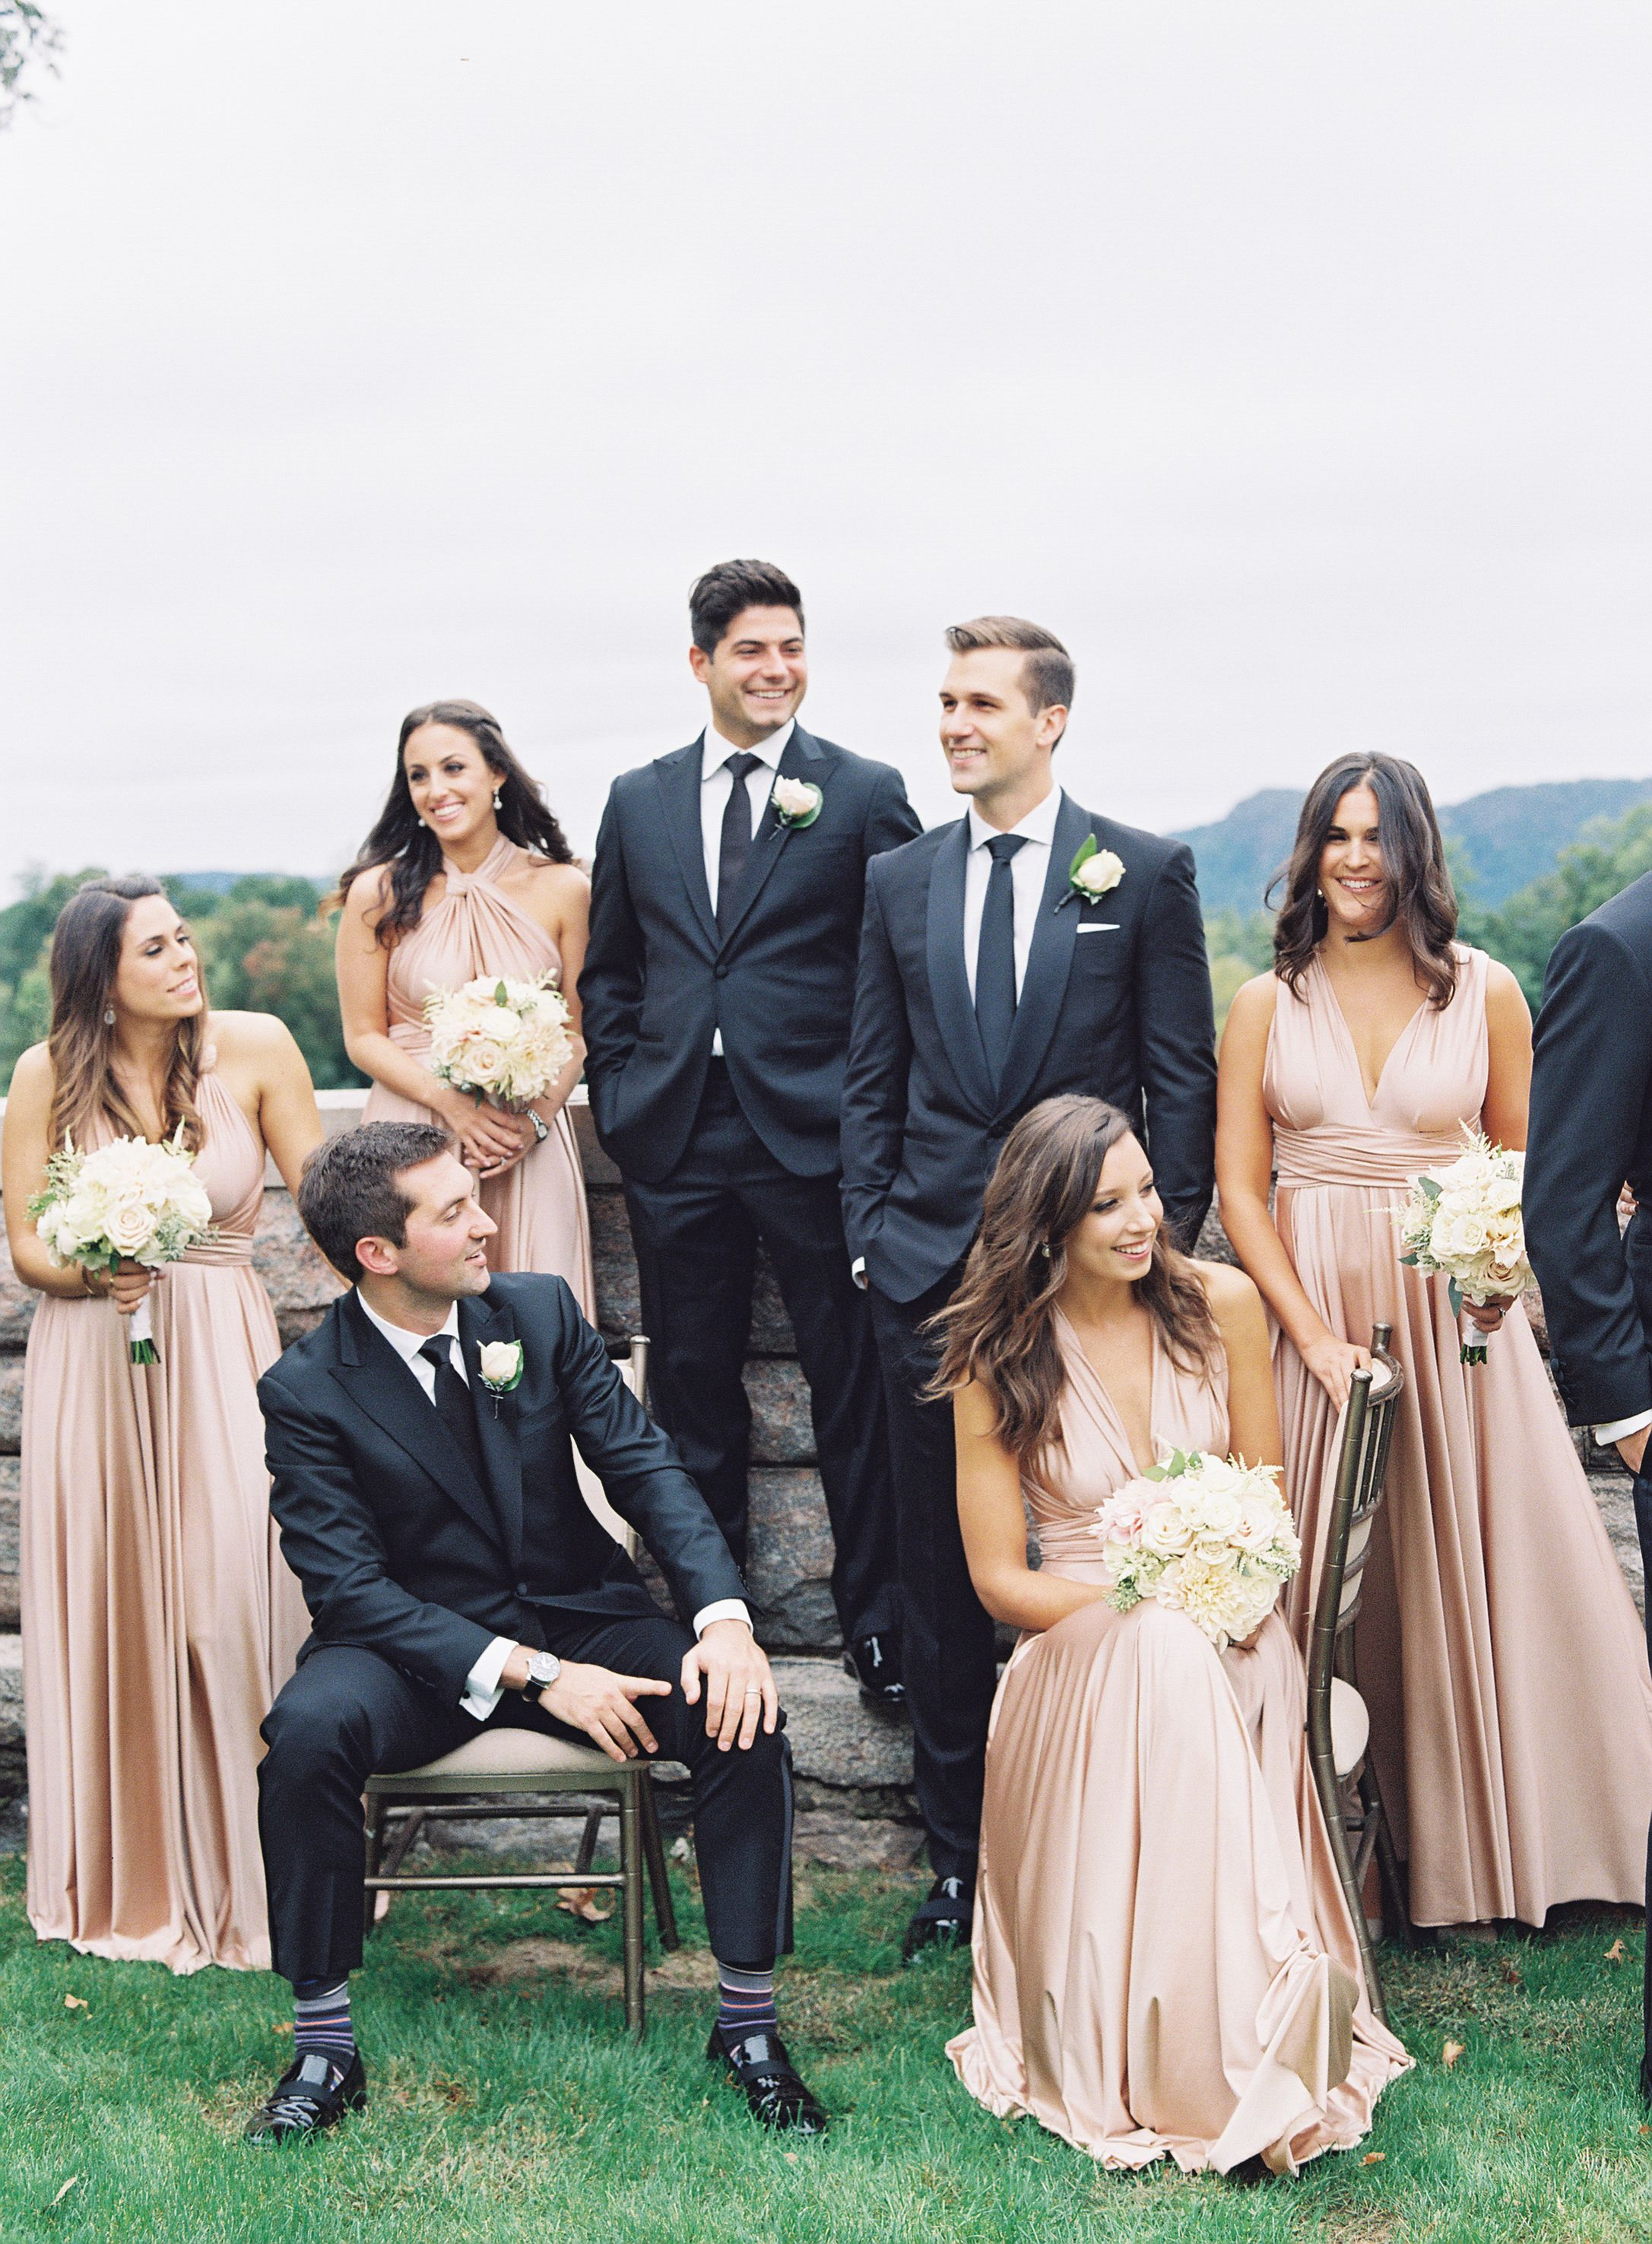 Rosewood rosegold twobirds bridesmaid dresses a real wedding rosewood rosegold twobirds bridesmaid dresses a real wedding featuring our multi way convertible ombrellifo Image collections